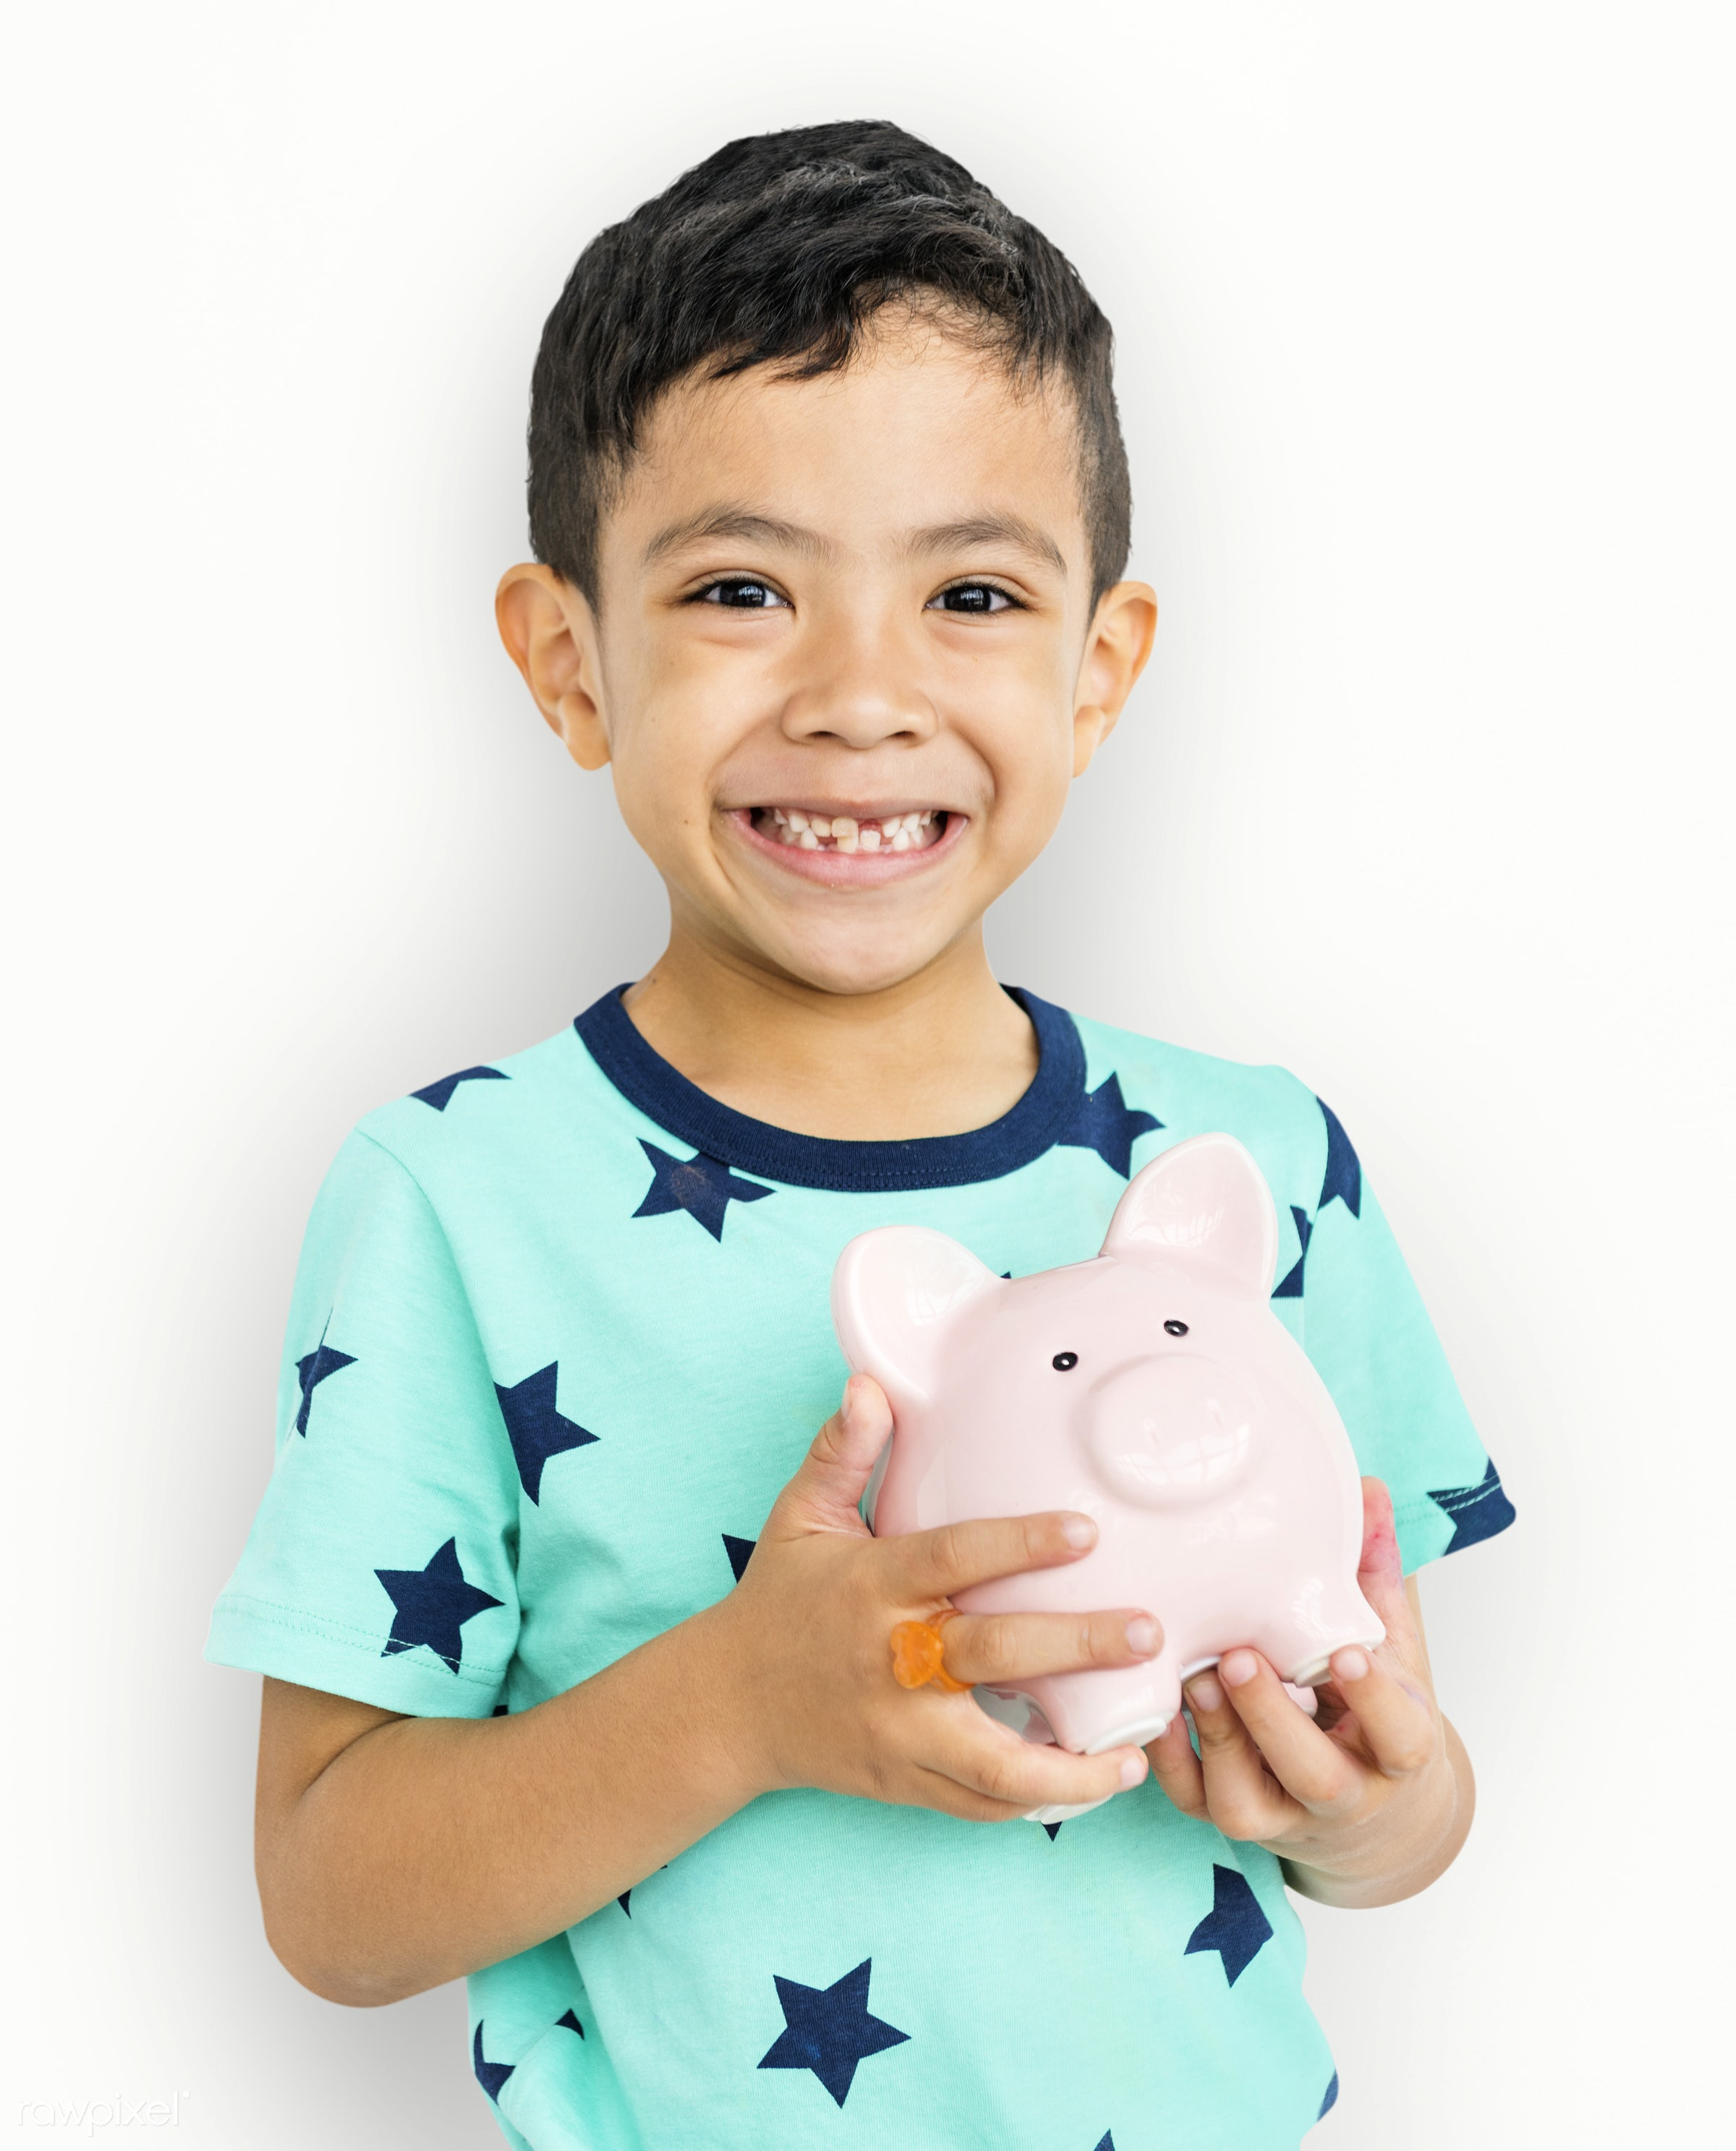 studio, expression, save money, person, joy, isolated on white, little, savings, cute, people, kid, child, joyous, happy,...